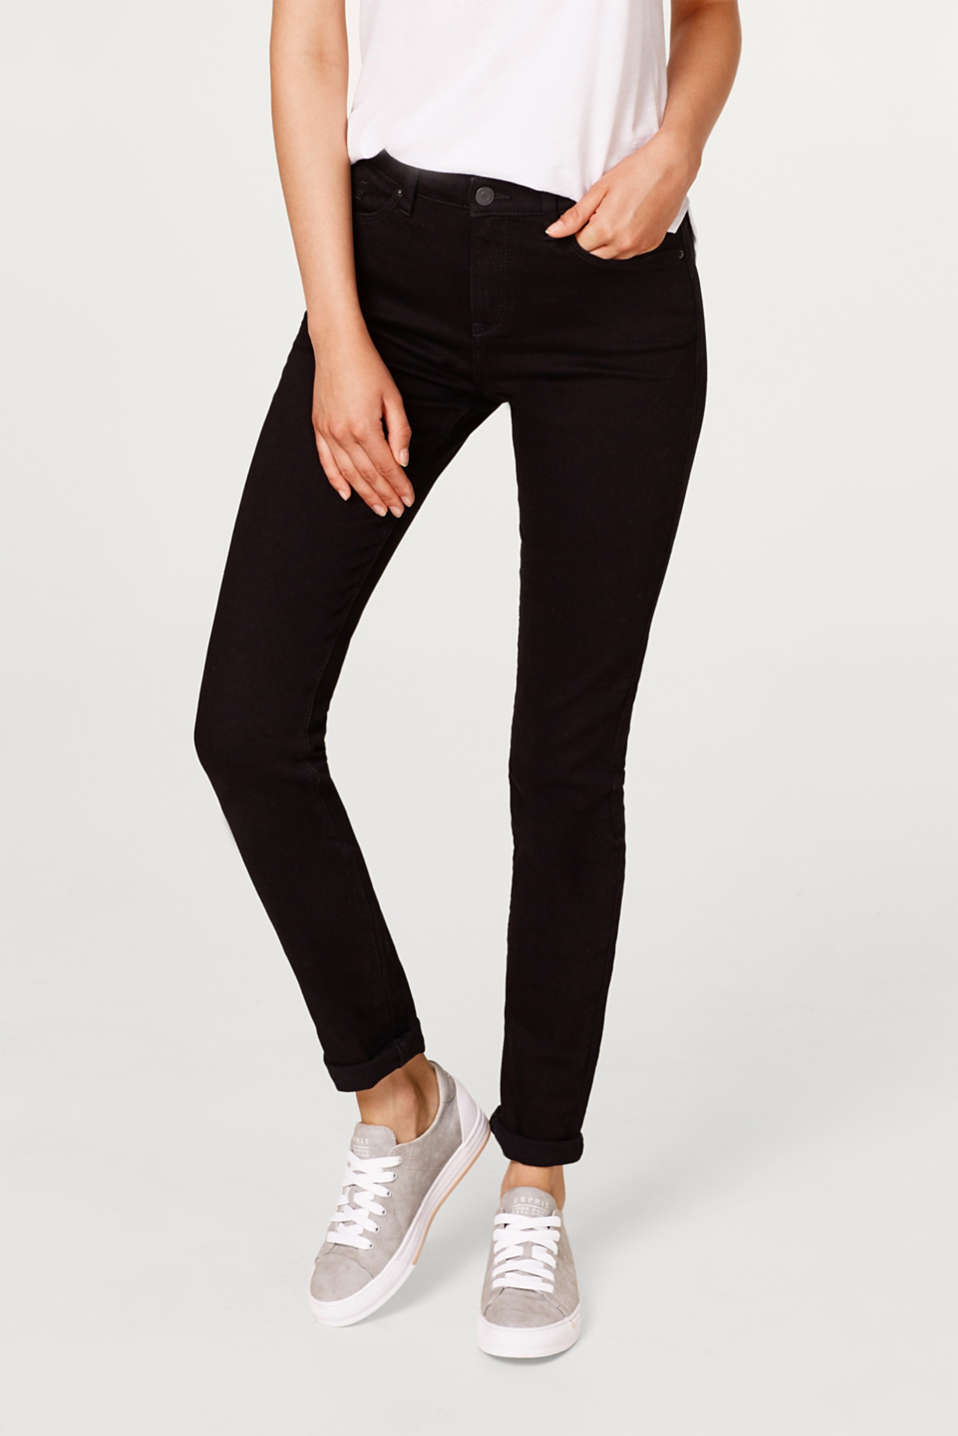 Esprit - Stretch jeans in deep black denim